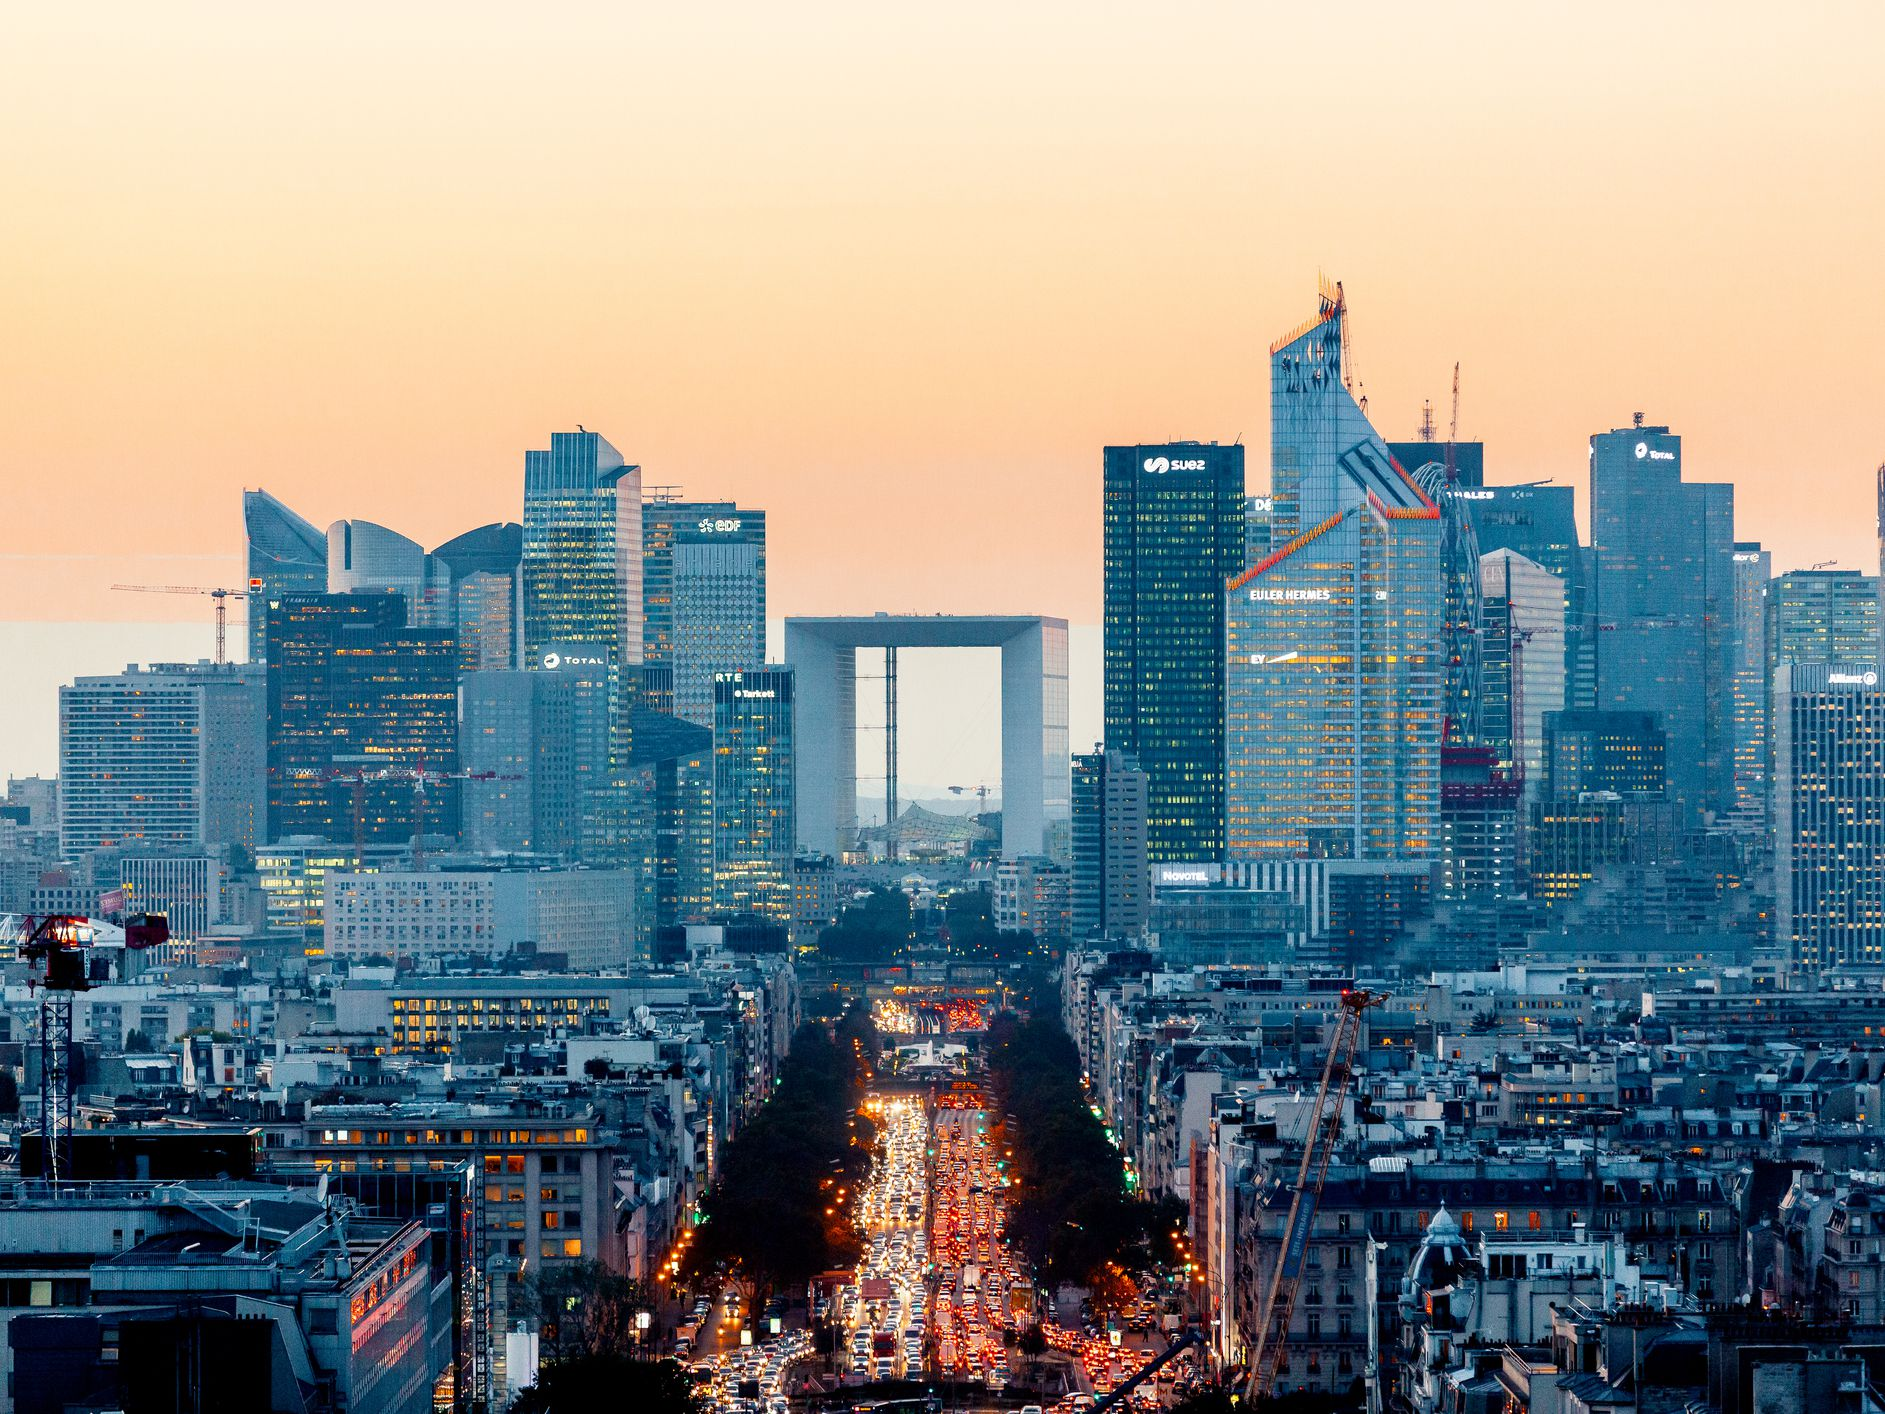 elevated-view-of-illuminated-skyscrapers-at-la-defense-financial-district-and-avenue-des-champs-elysees-at-dusk--paris--france-1095523752-3cb2b3881abc422ca187f42e70f55435